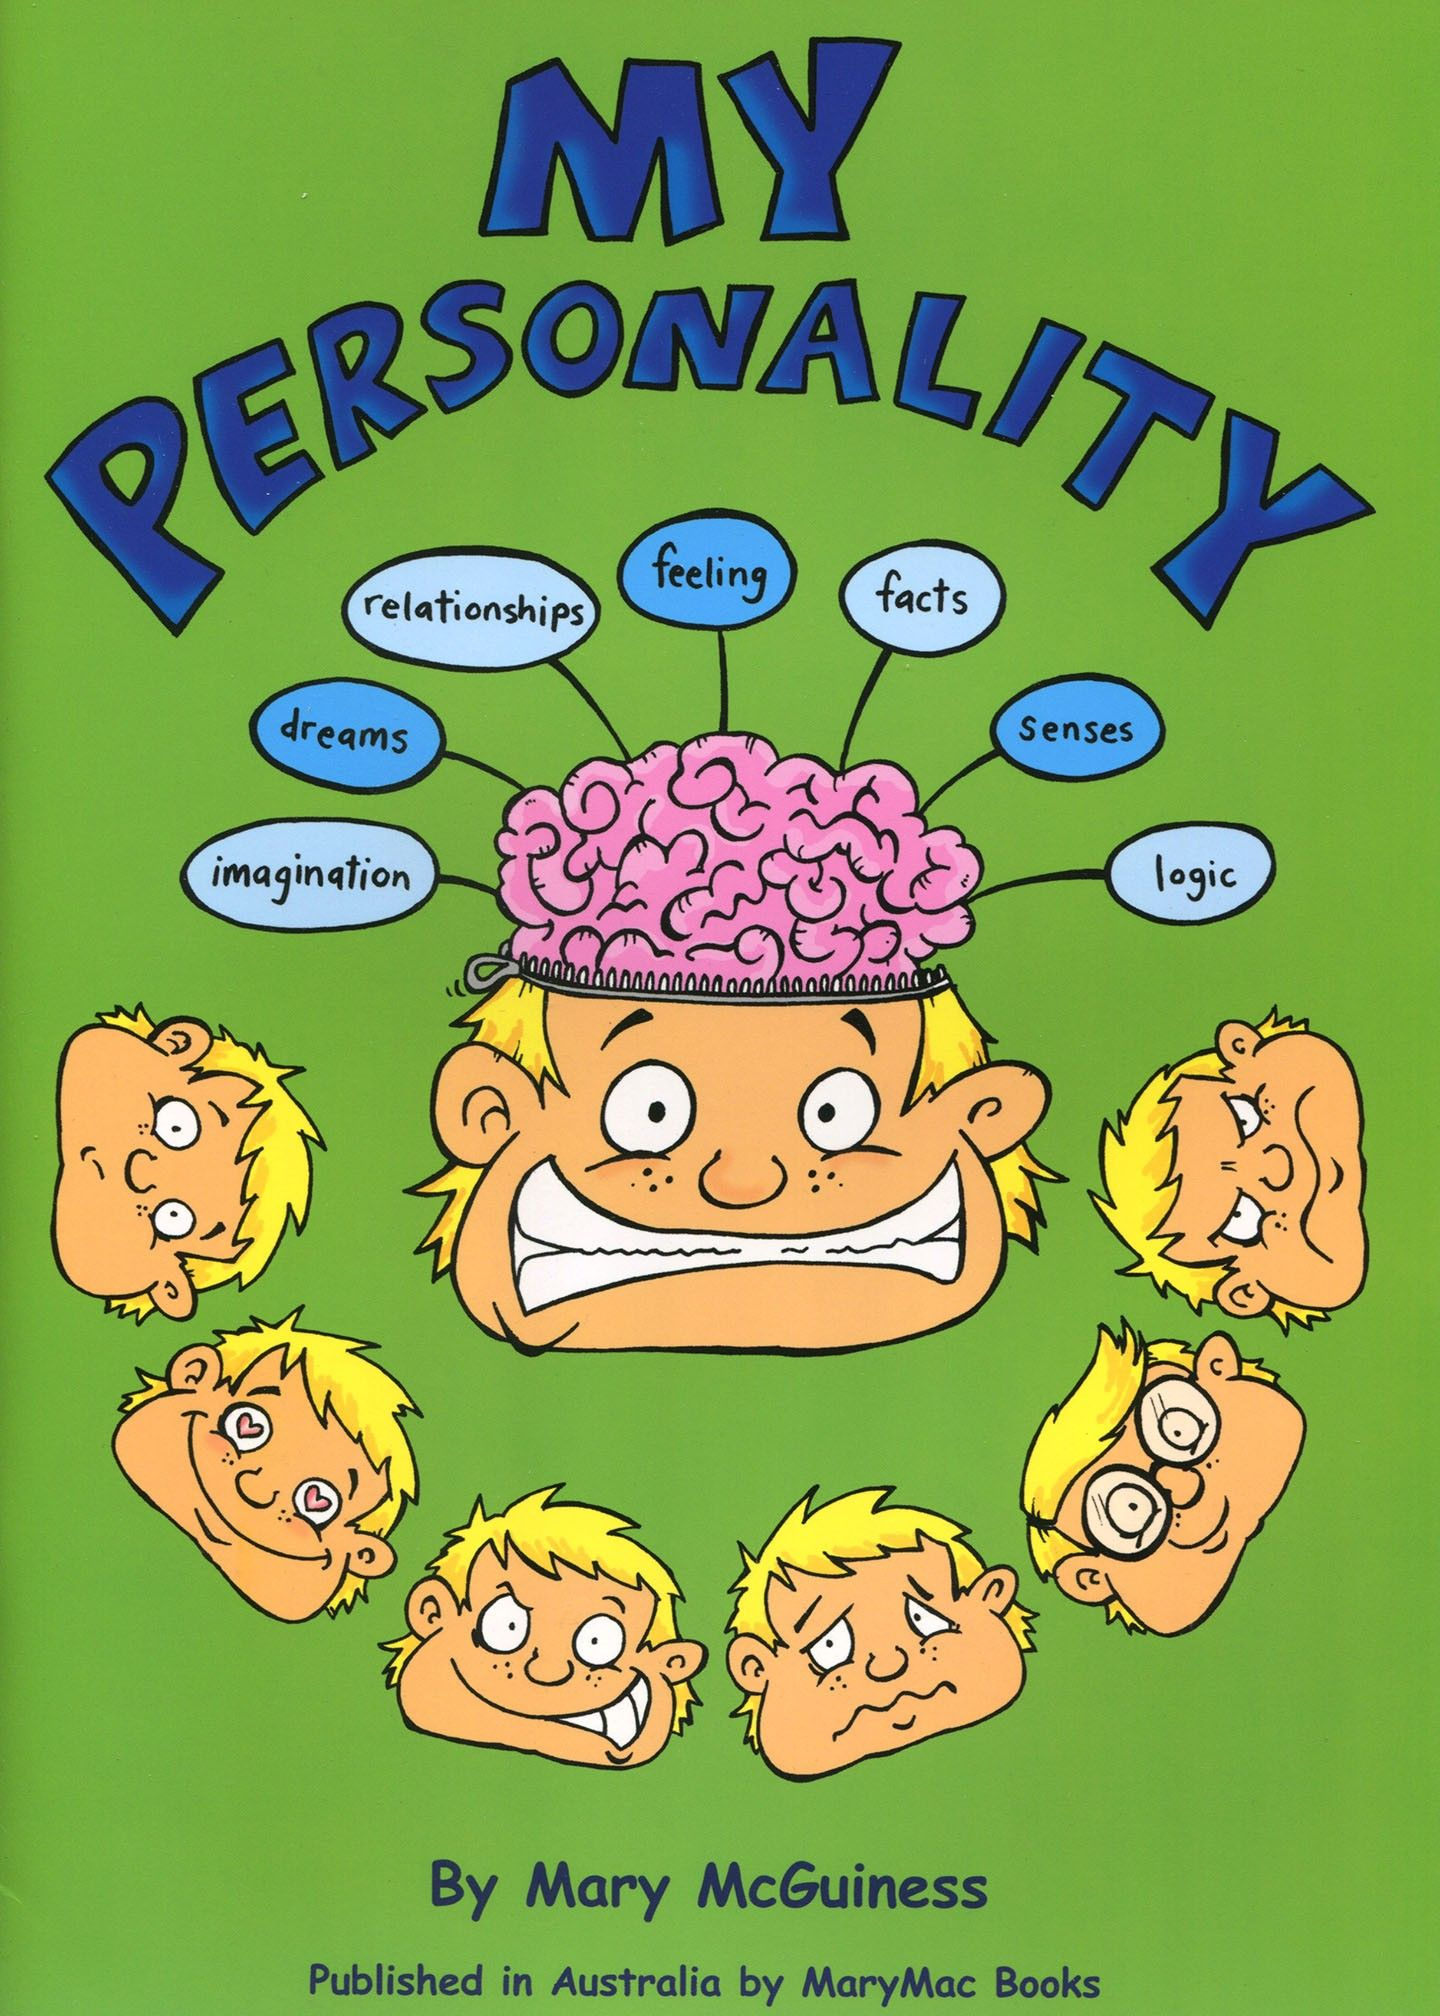 Child's Personality